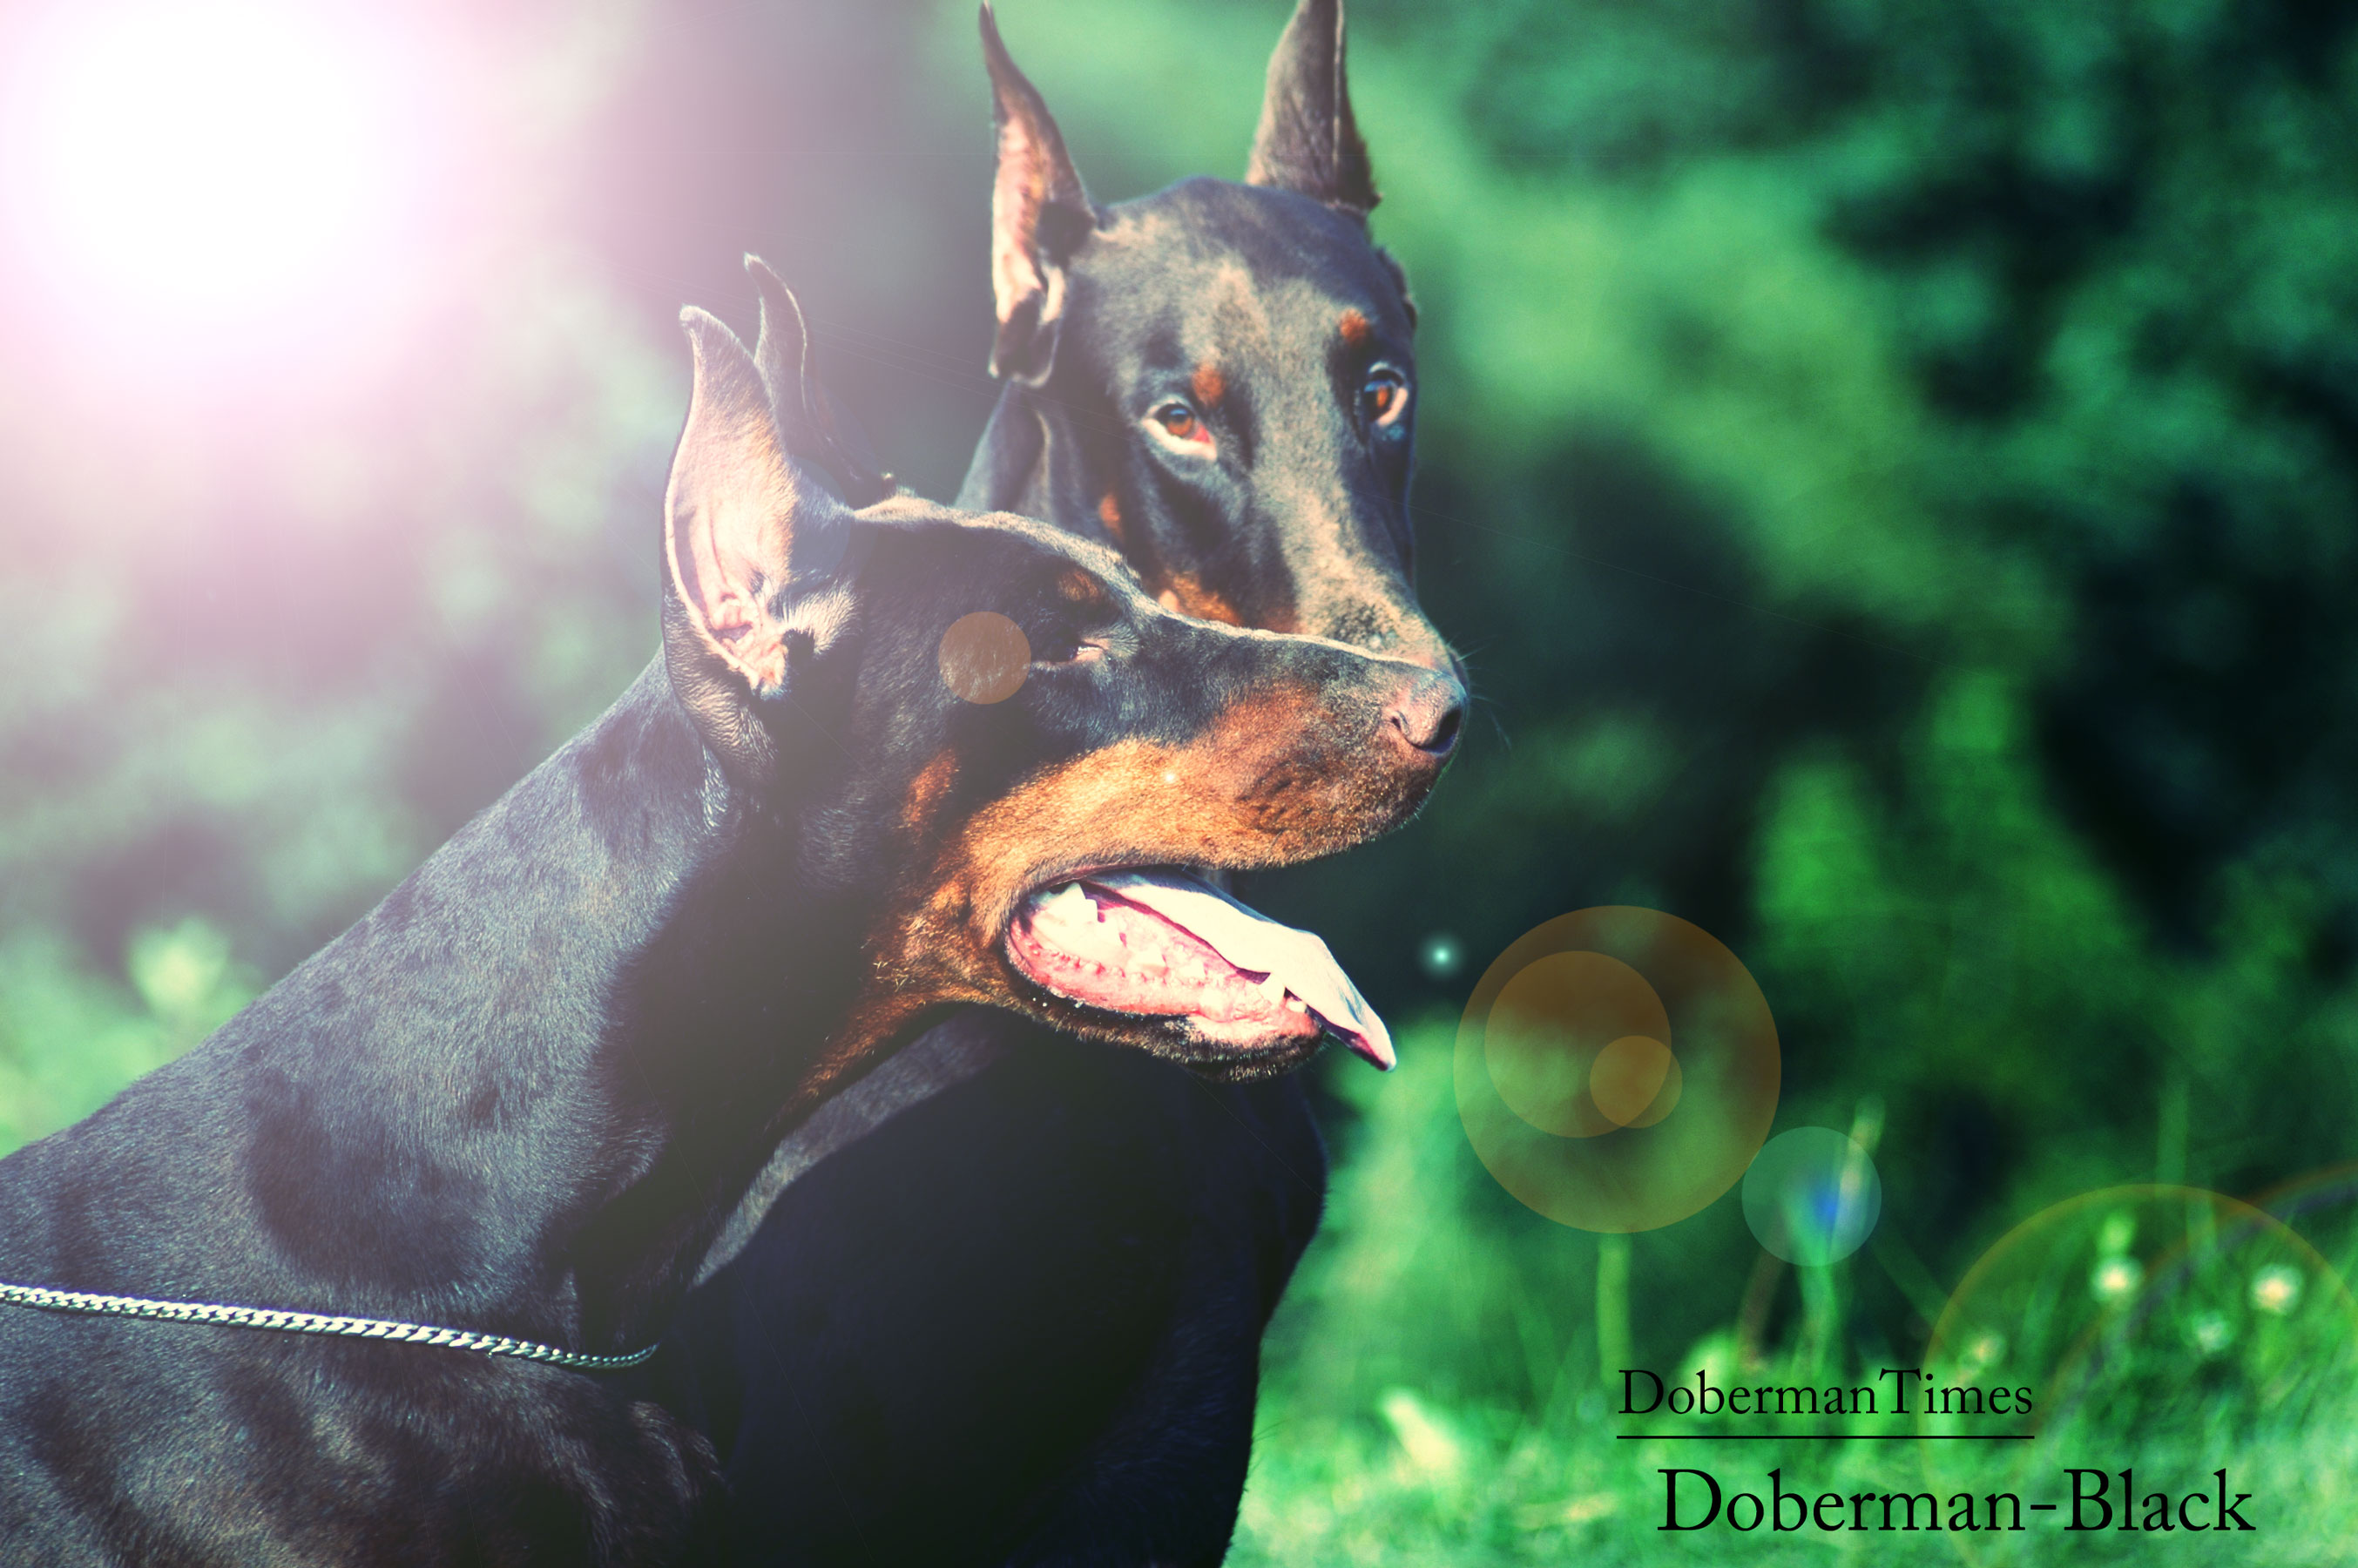 2Doberman-Black